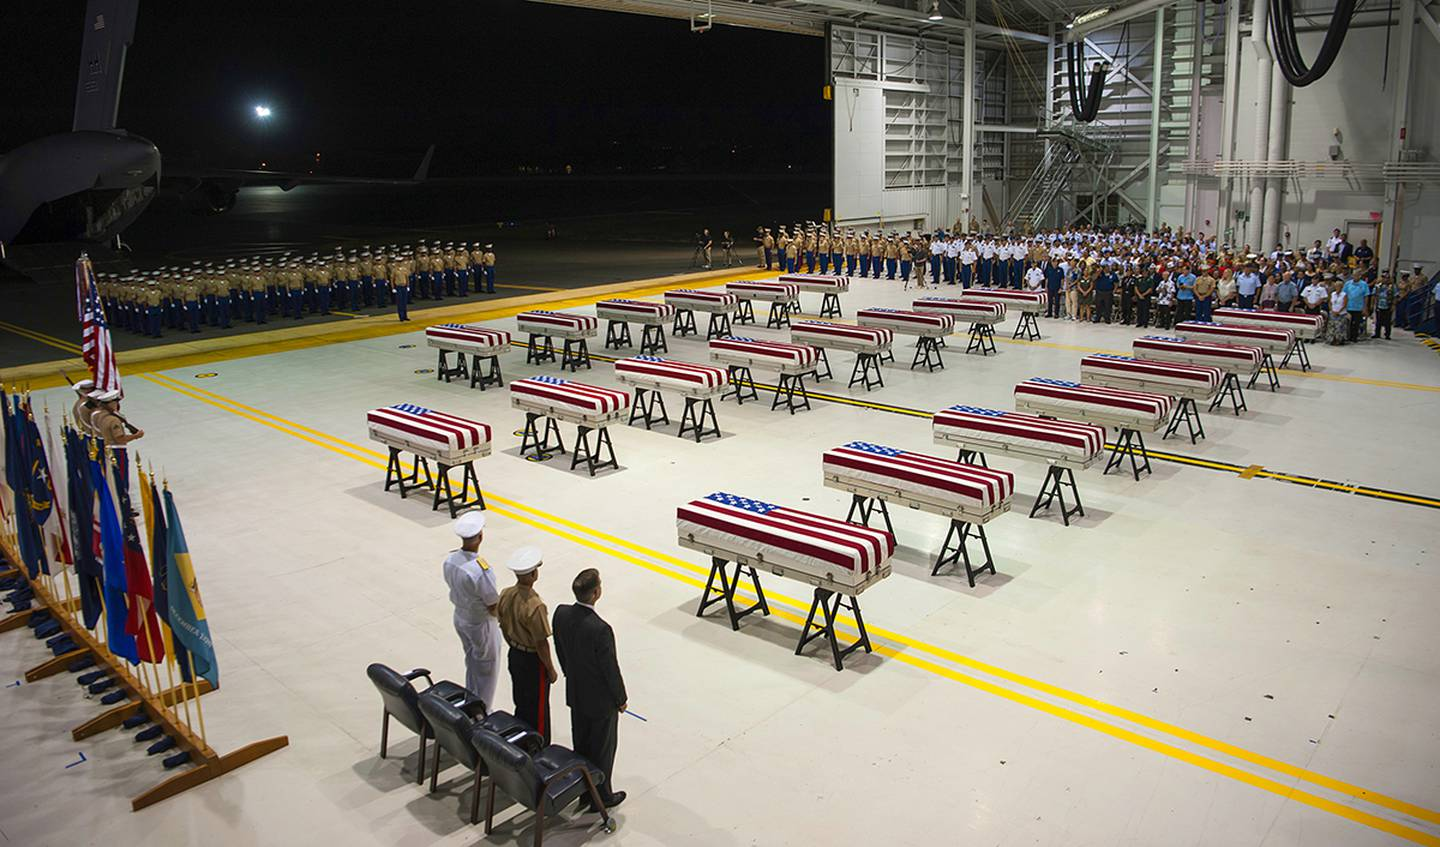 """In this Wednesday, July 17, 2019 photo, service members and guests stand as """"Taps"""" is played over transfer cases carrying the possible remains of unidentified service members lost in the Battle of Tarawa during World War II in a hangar at Joint Base Pearl Harbor-Hickam in Hawaii."""